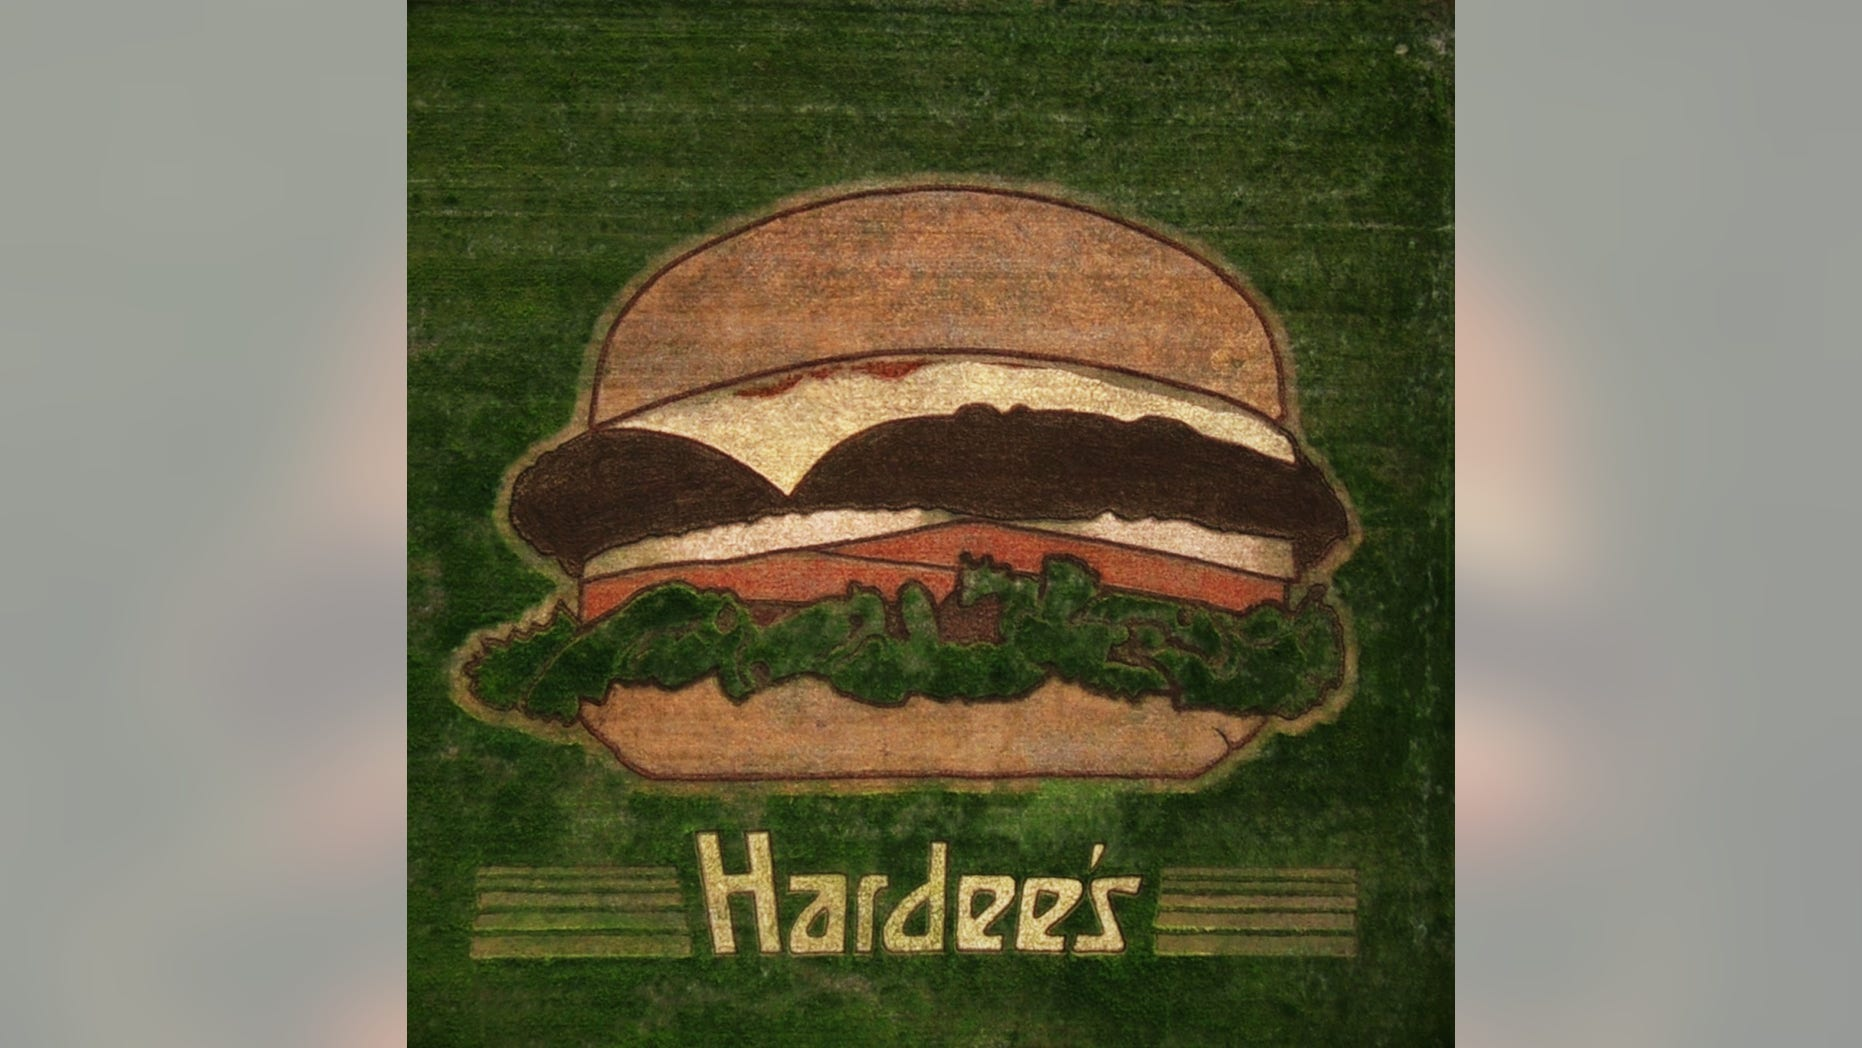 Instead of using a billboard, Hardee's plastered their name and a massive burger across a Nashville field.